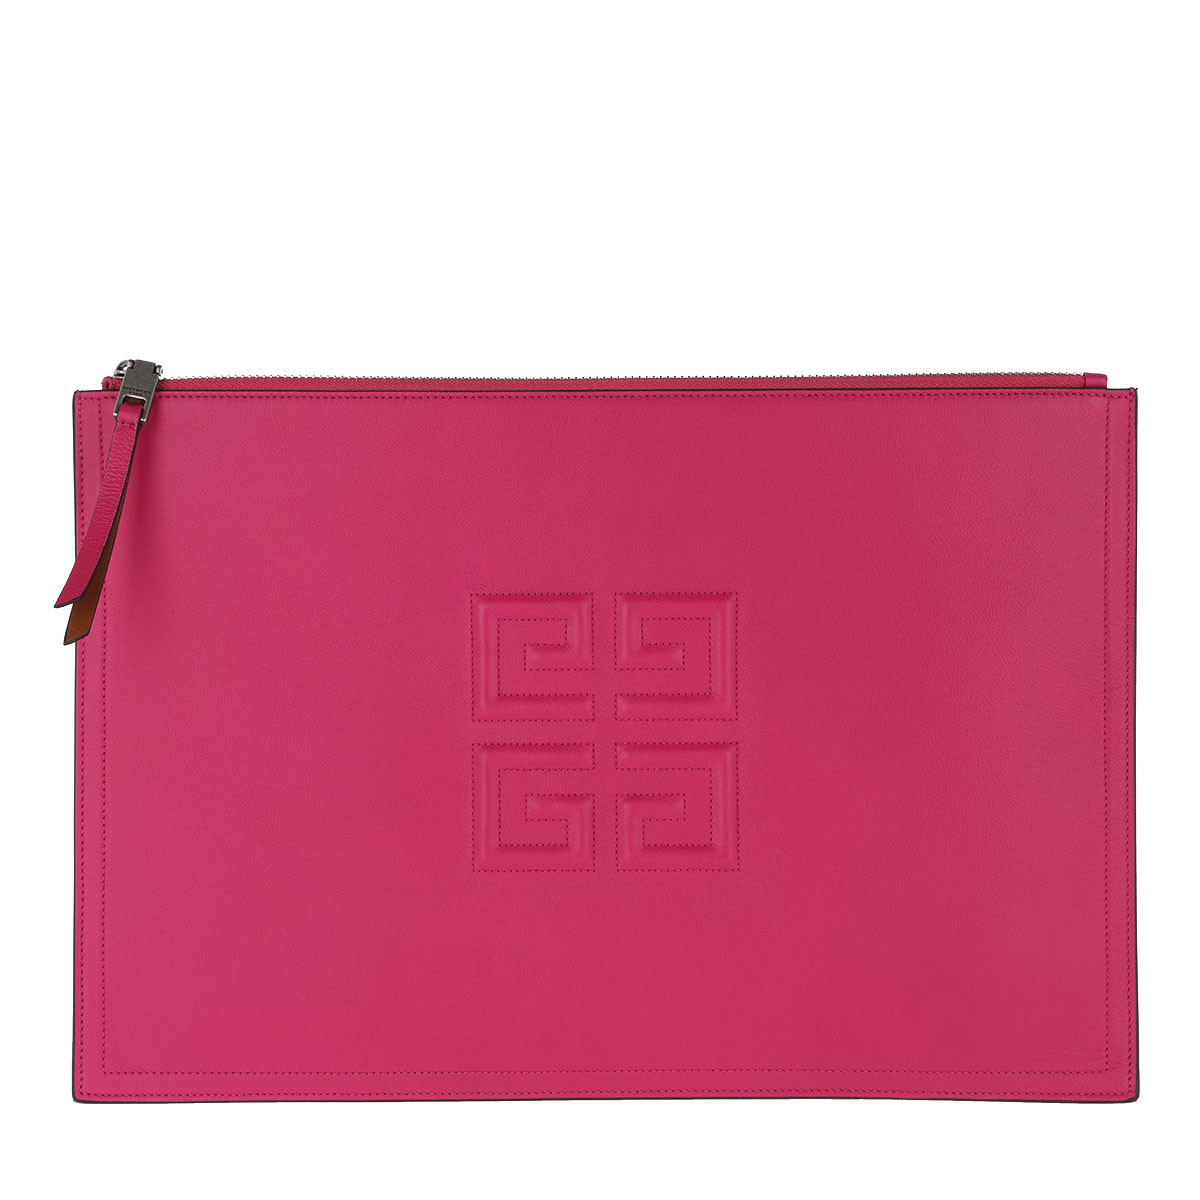 Givenchy Clutch - 4G Embossed Logo Clutch Leather Cyclamen - in pink - für Damen